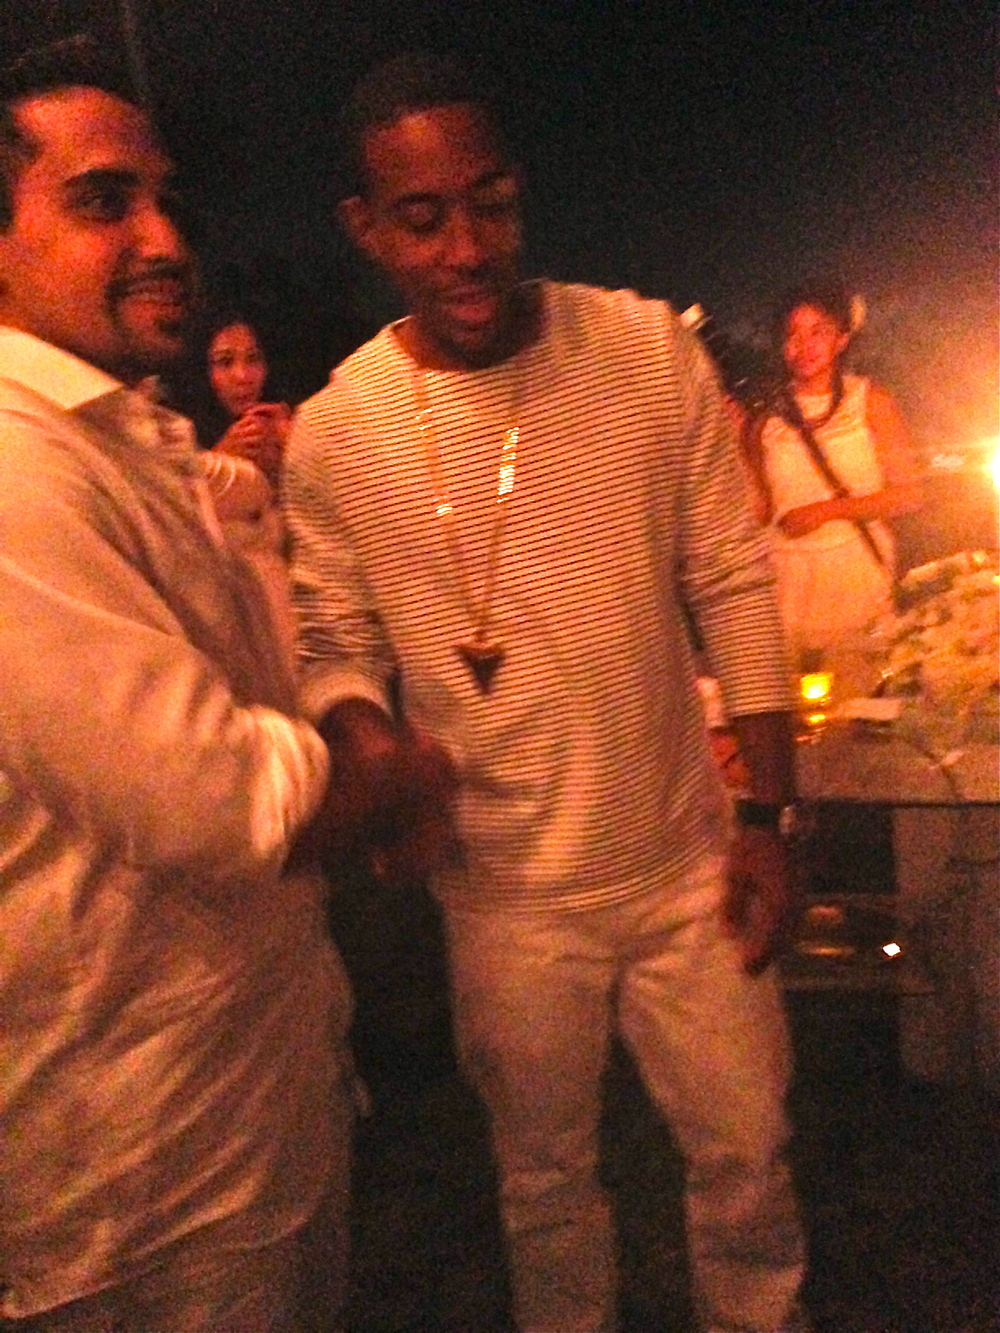 3 feet away from Ludacris and this was the best pic I could snap :(